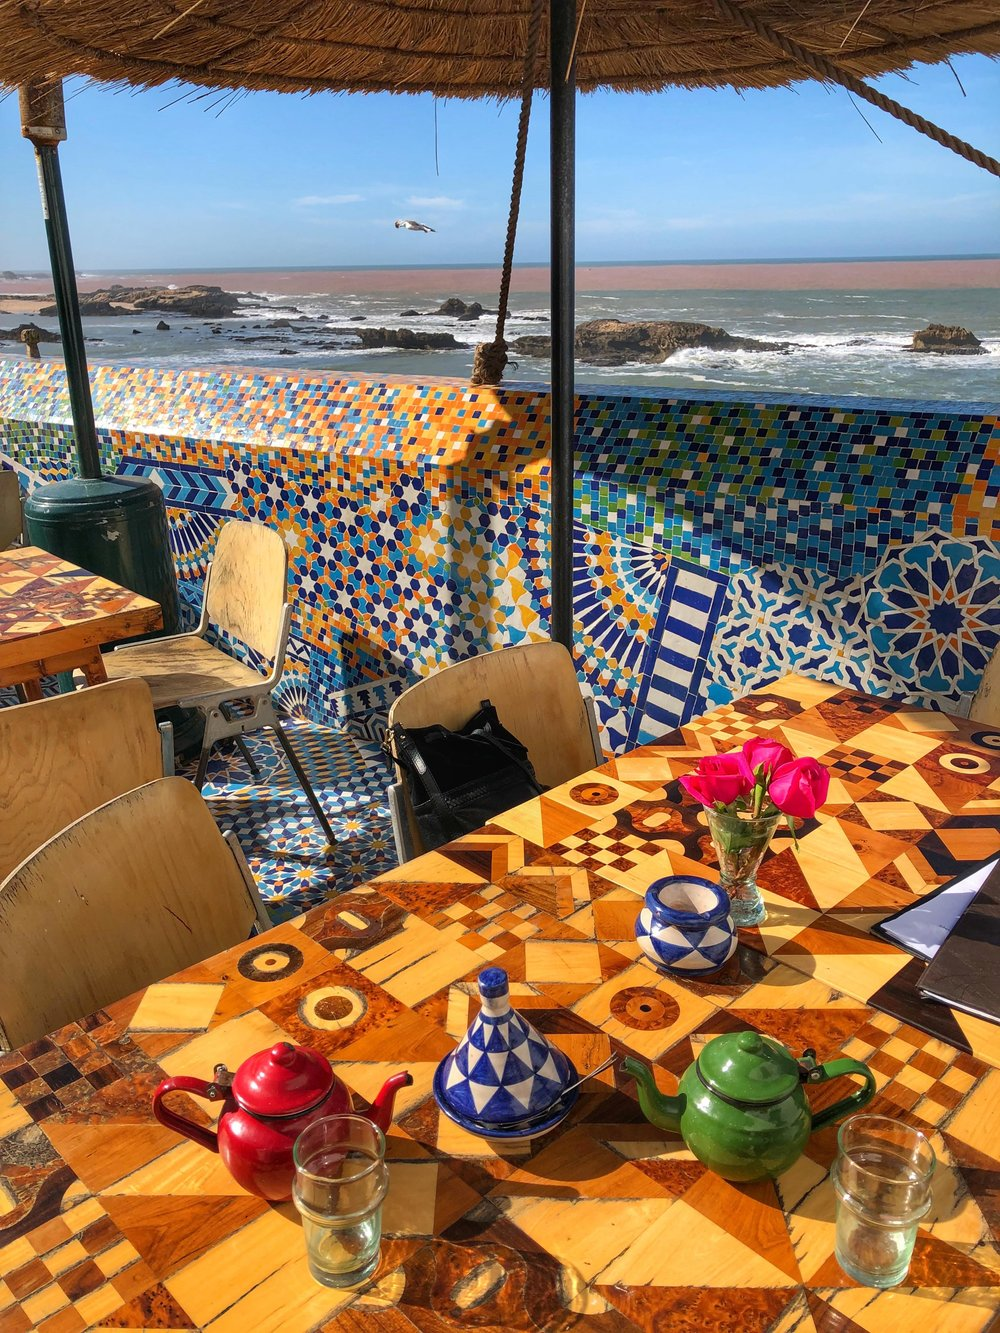 Essaouira for a day